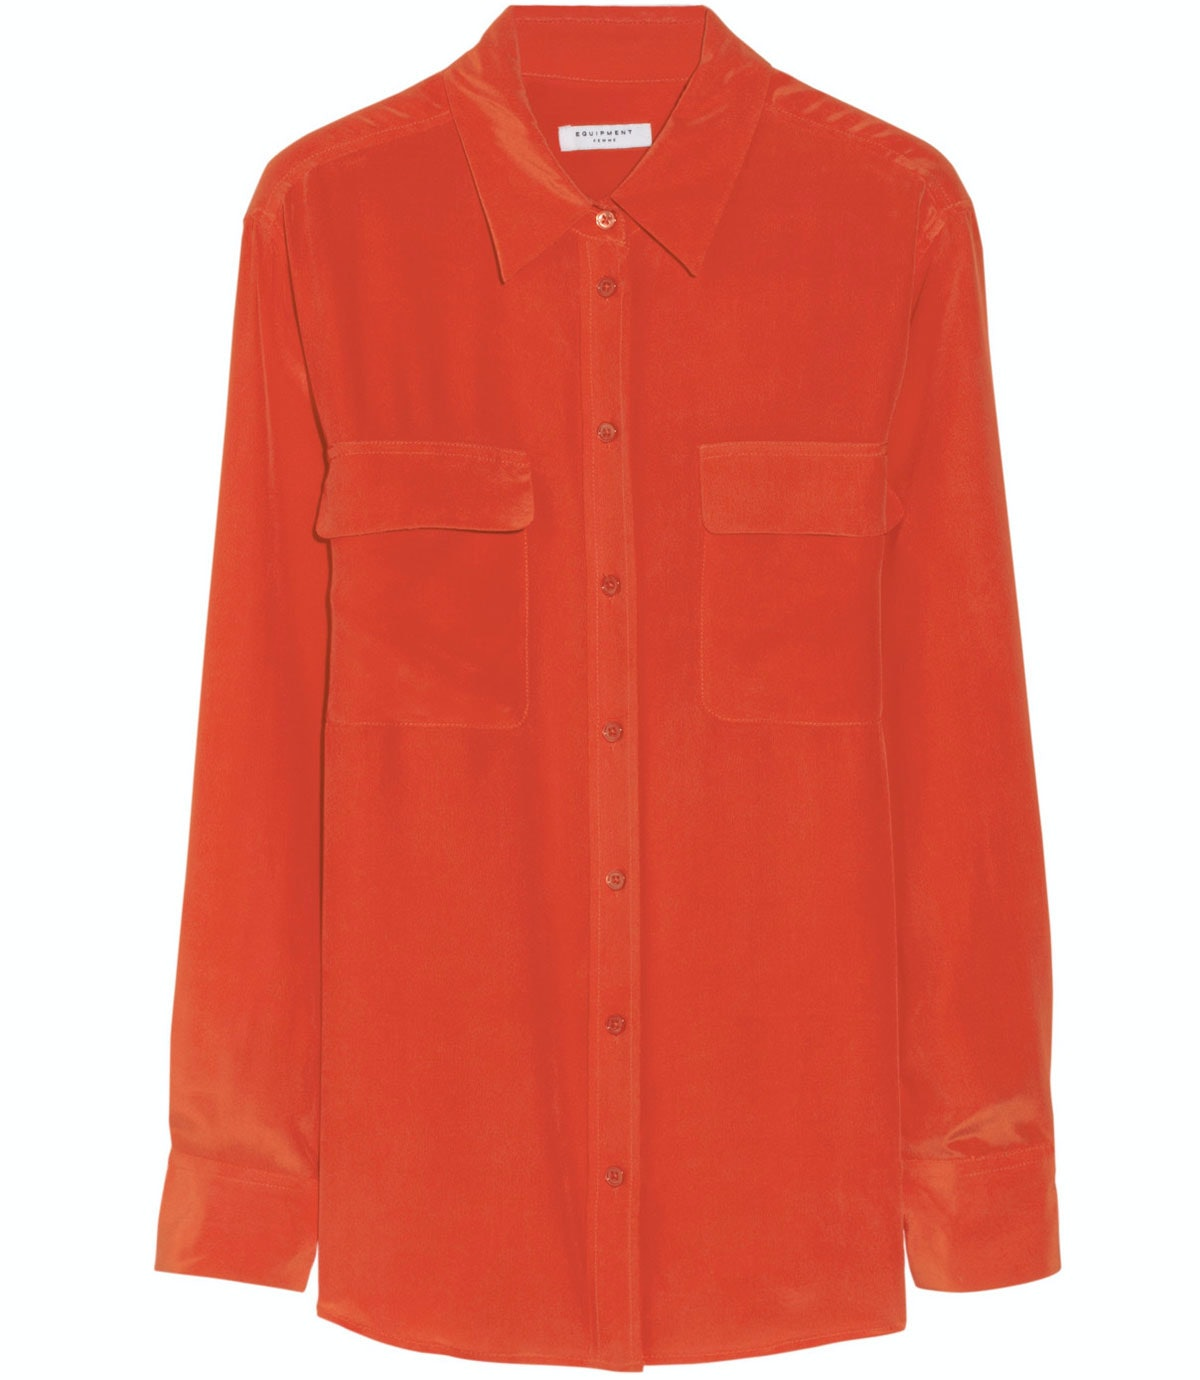 This classic button-down shirt comes in the best shade of orange—perfect for watching the big game. *Equipment top, $210, [net-a-porter.com](http://www.net-a-porter.com).*